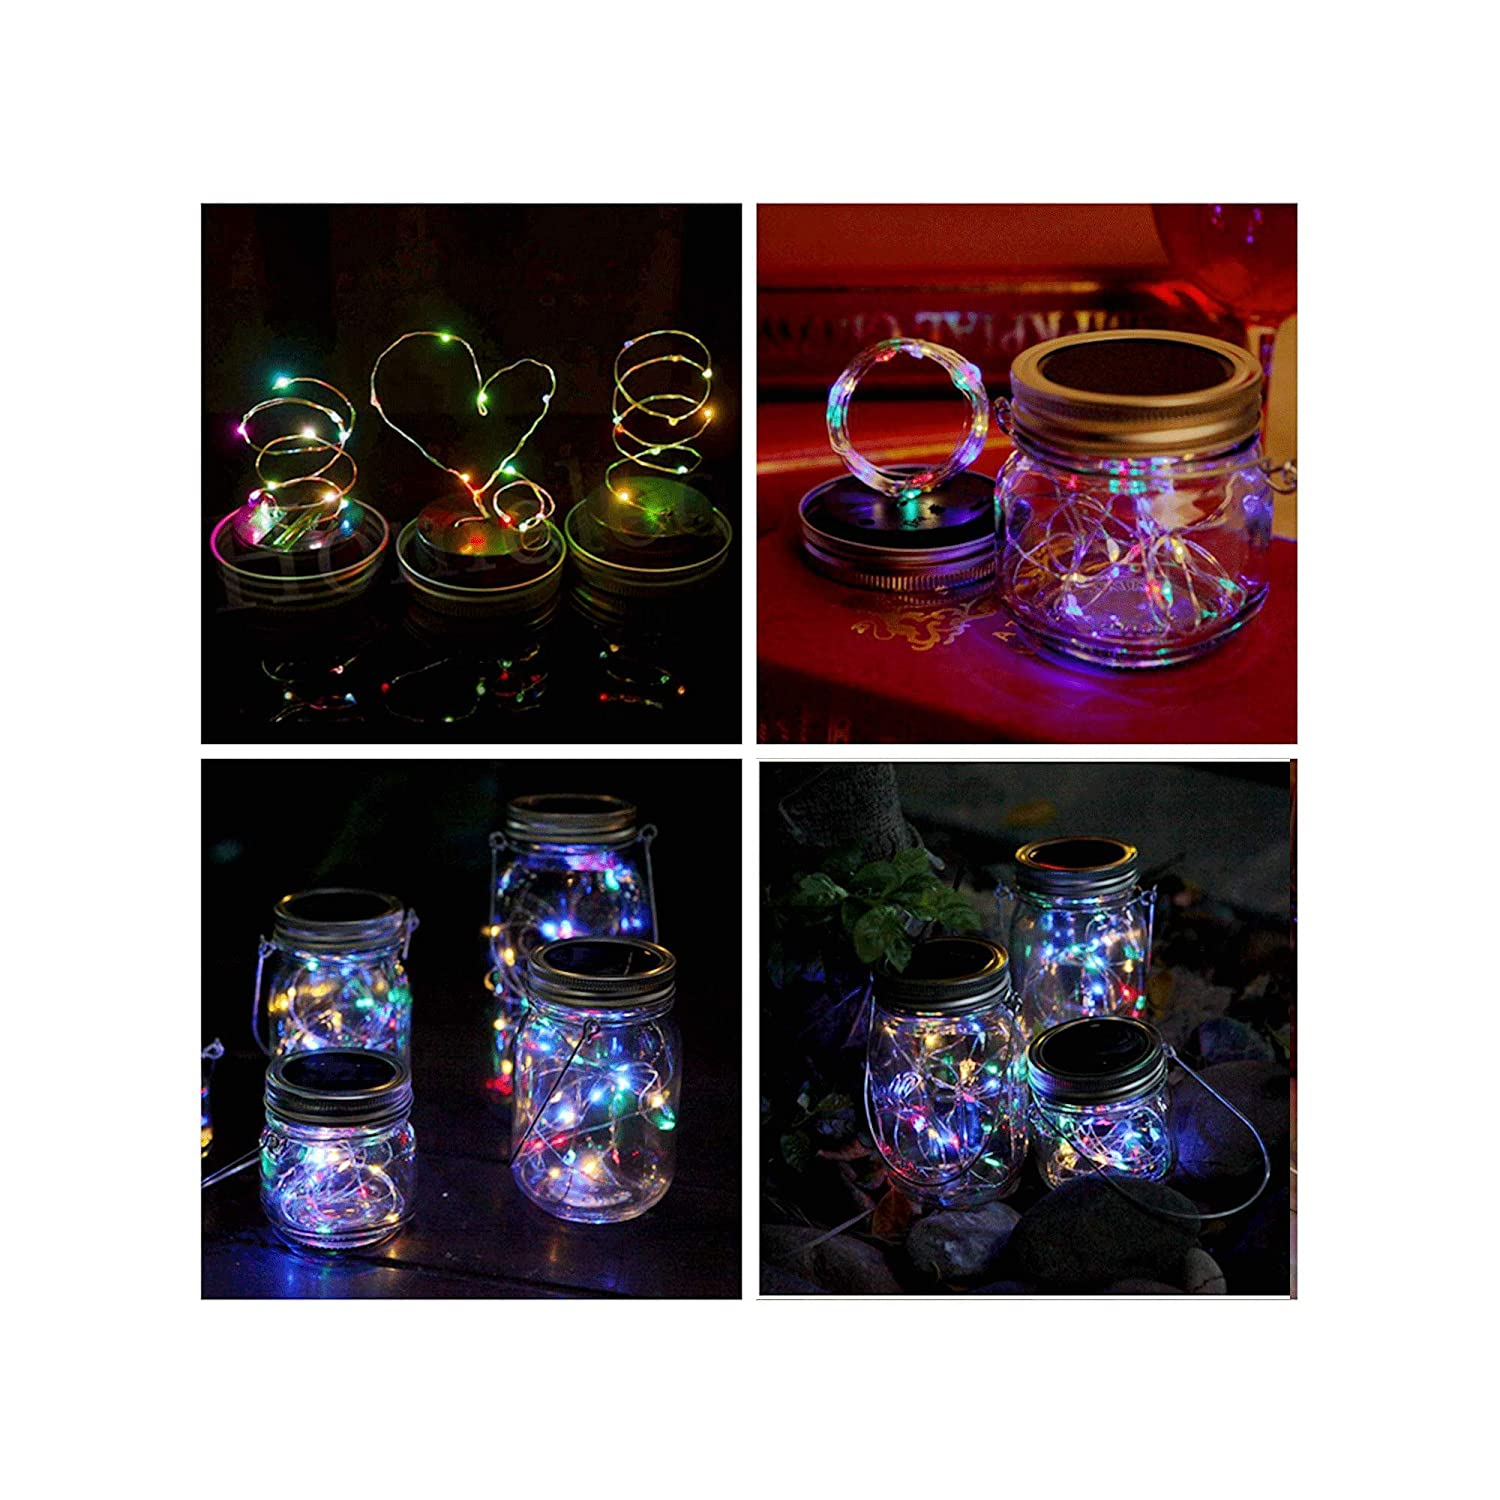 Jars Not Included Warm White Solar Mason Jar Lid Light,4 Pack 20Led String Fairy Lights 4 Hangers ,Best for Mason Jar Decor,Patio Garden Decor Solar Laterns Table Lights